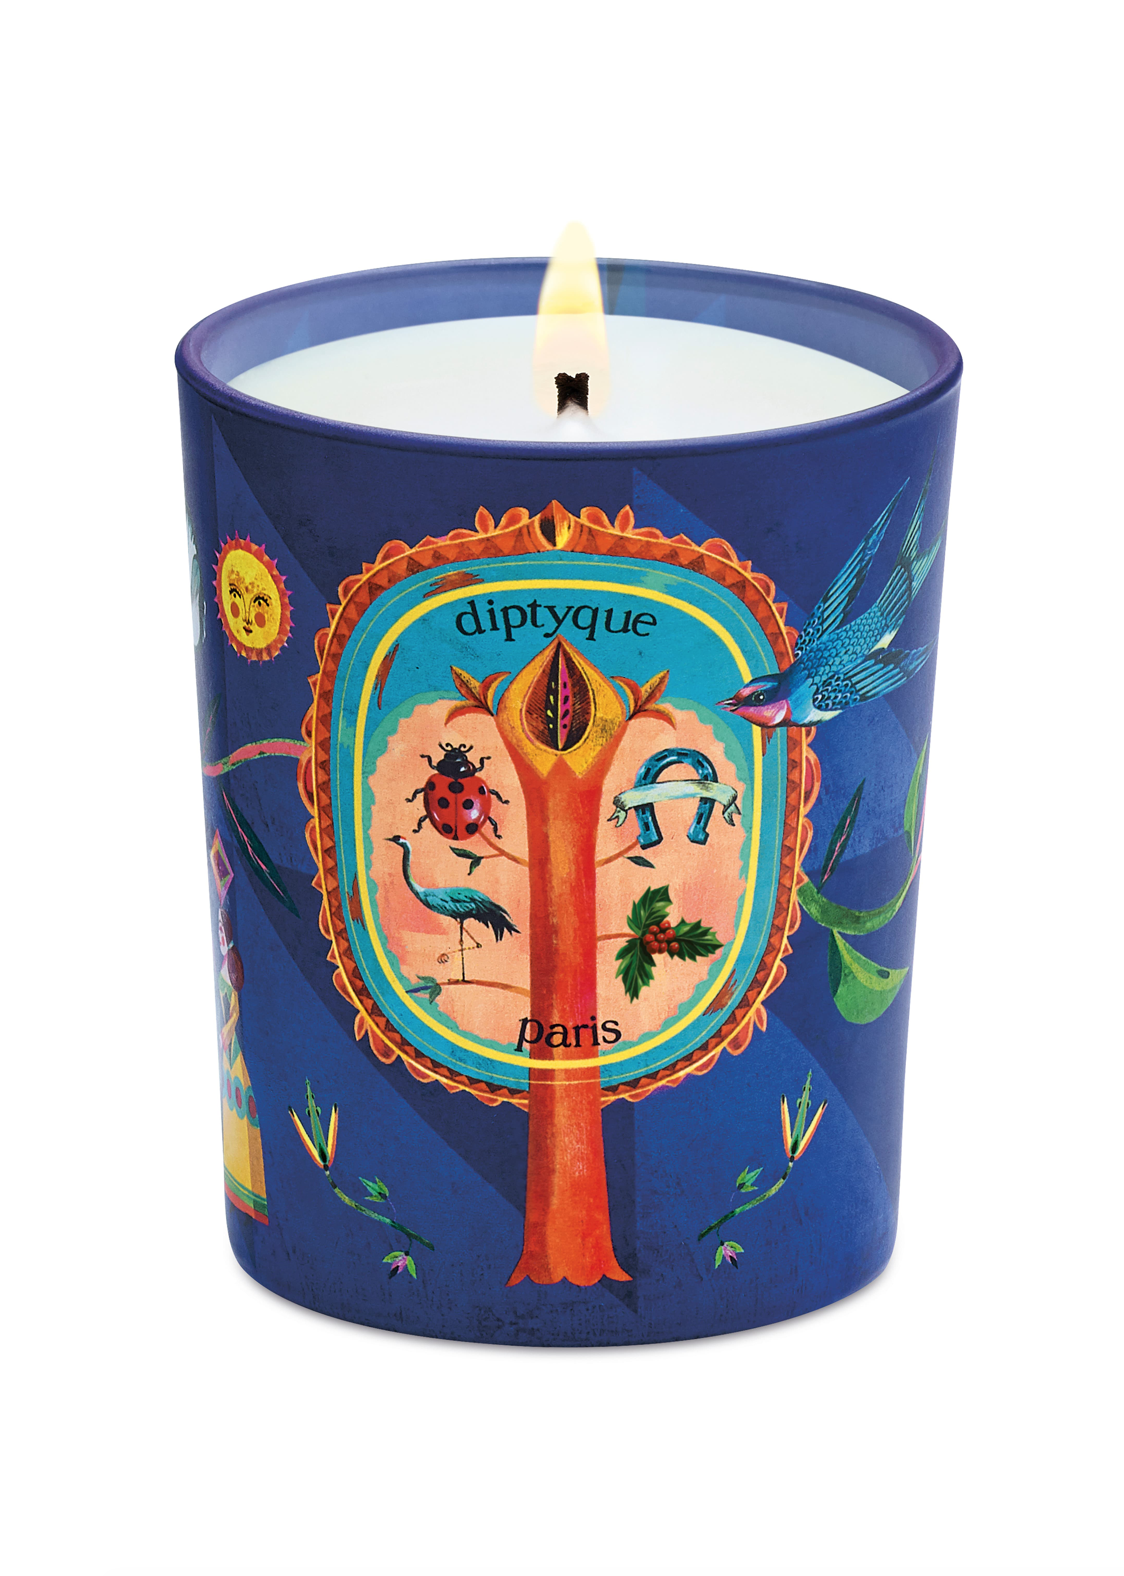 Limited Edition Diptyque Candle